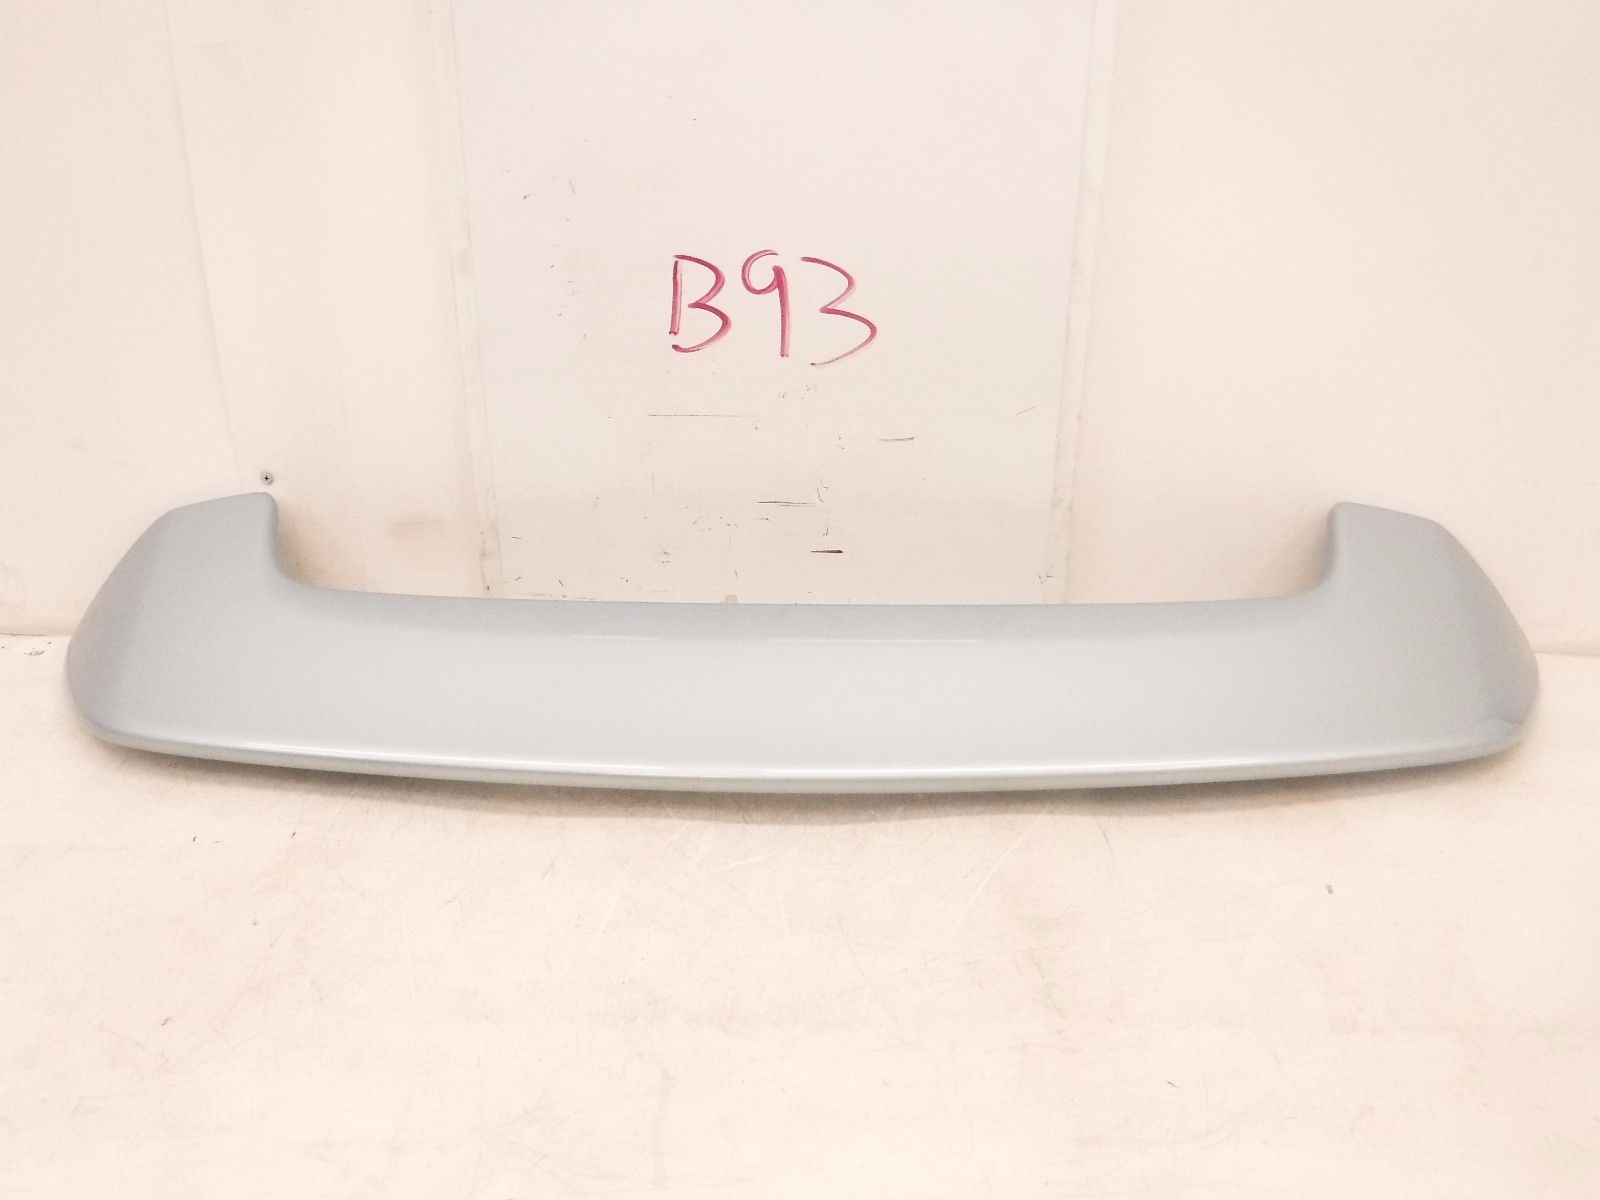 NEW OEM SPOILER MAZDA 2 MAZDA2 SPORT WING LIP AIR DAM ICY BLUE 33Y 11 2 13 14